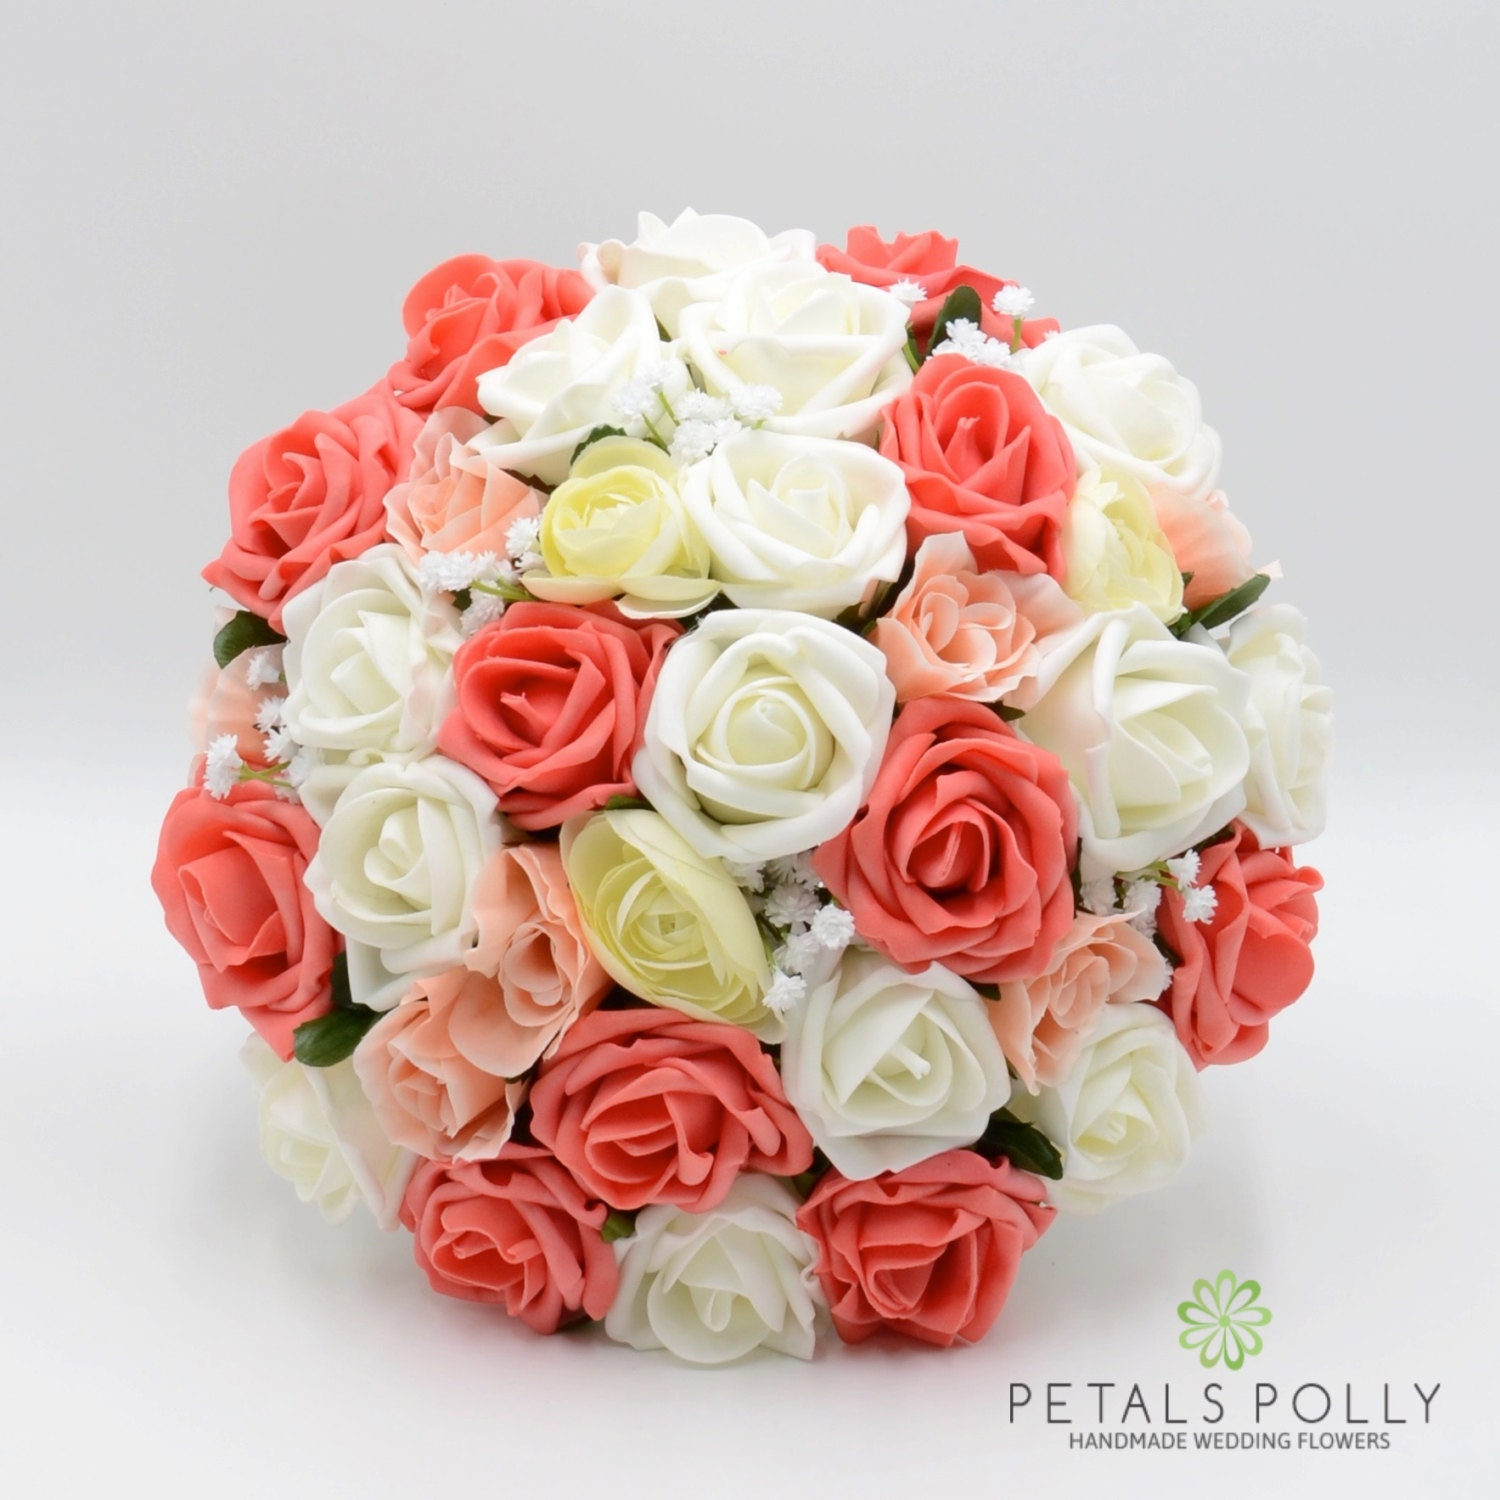 Artificial Wedding Flowers Orange Coral Peach  Ivory Brides Bouquet Posy with Ranunculus